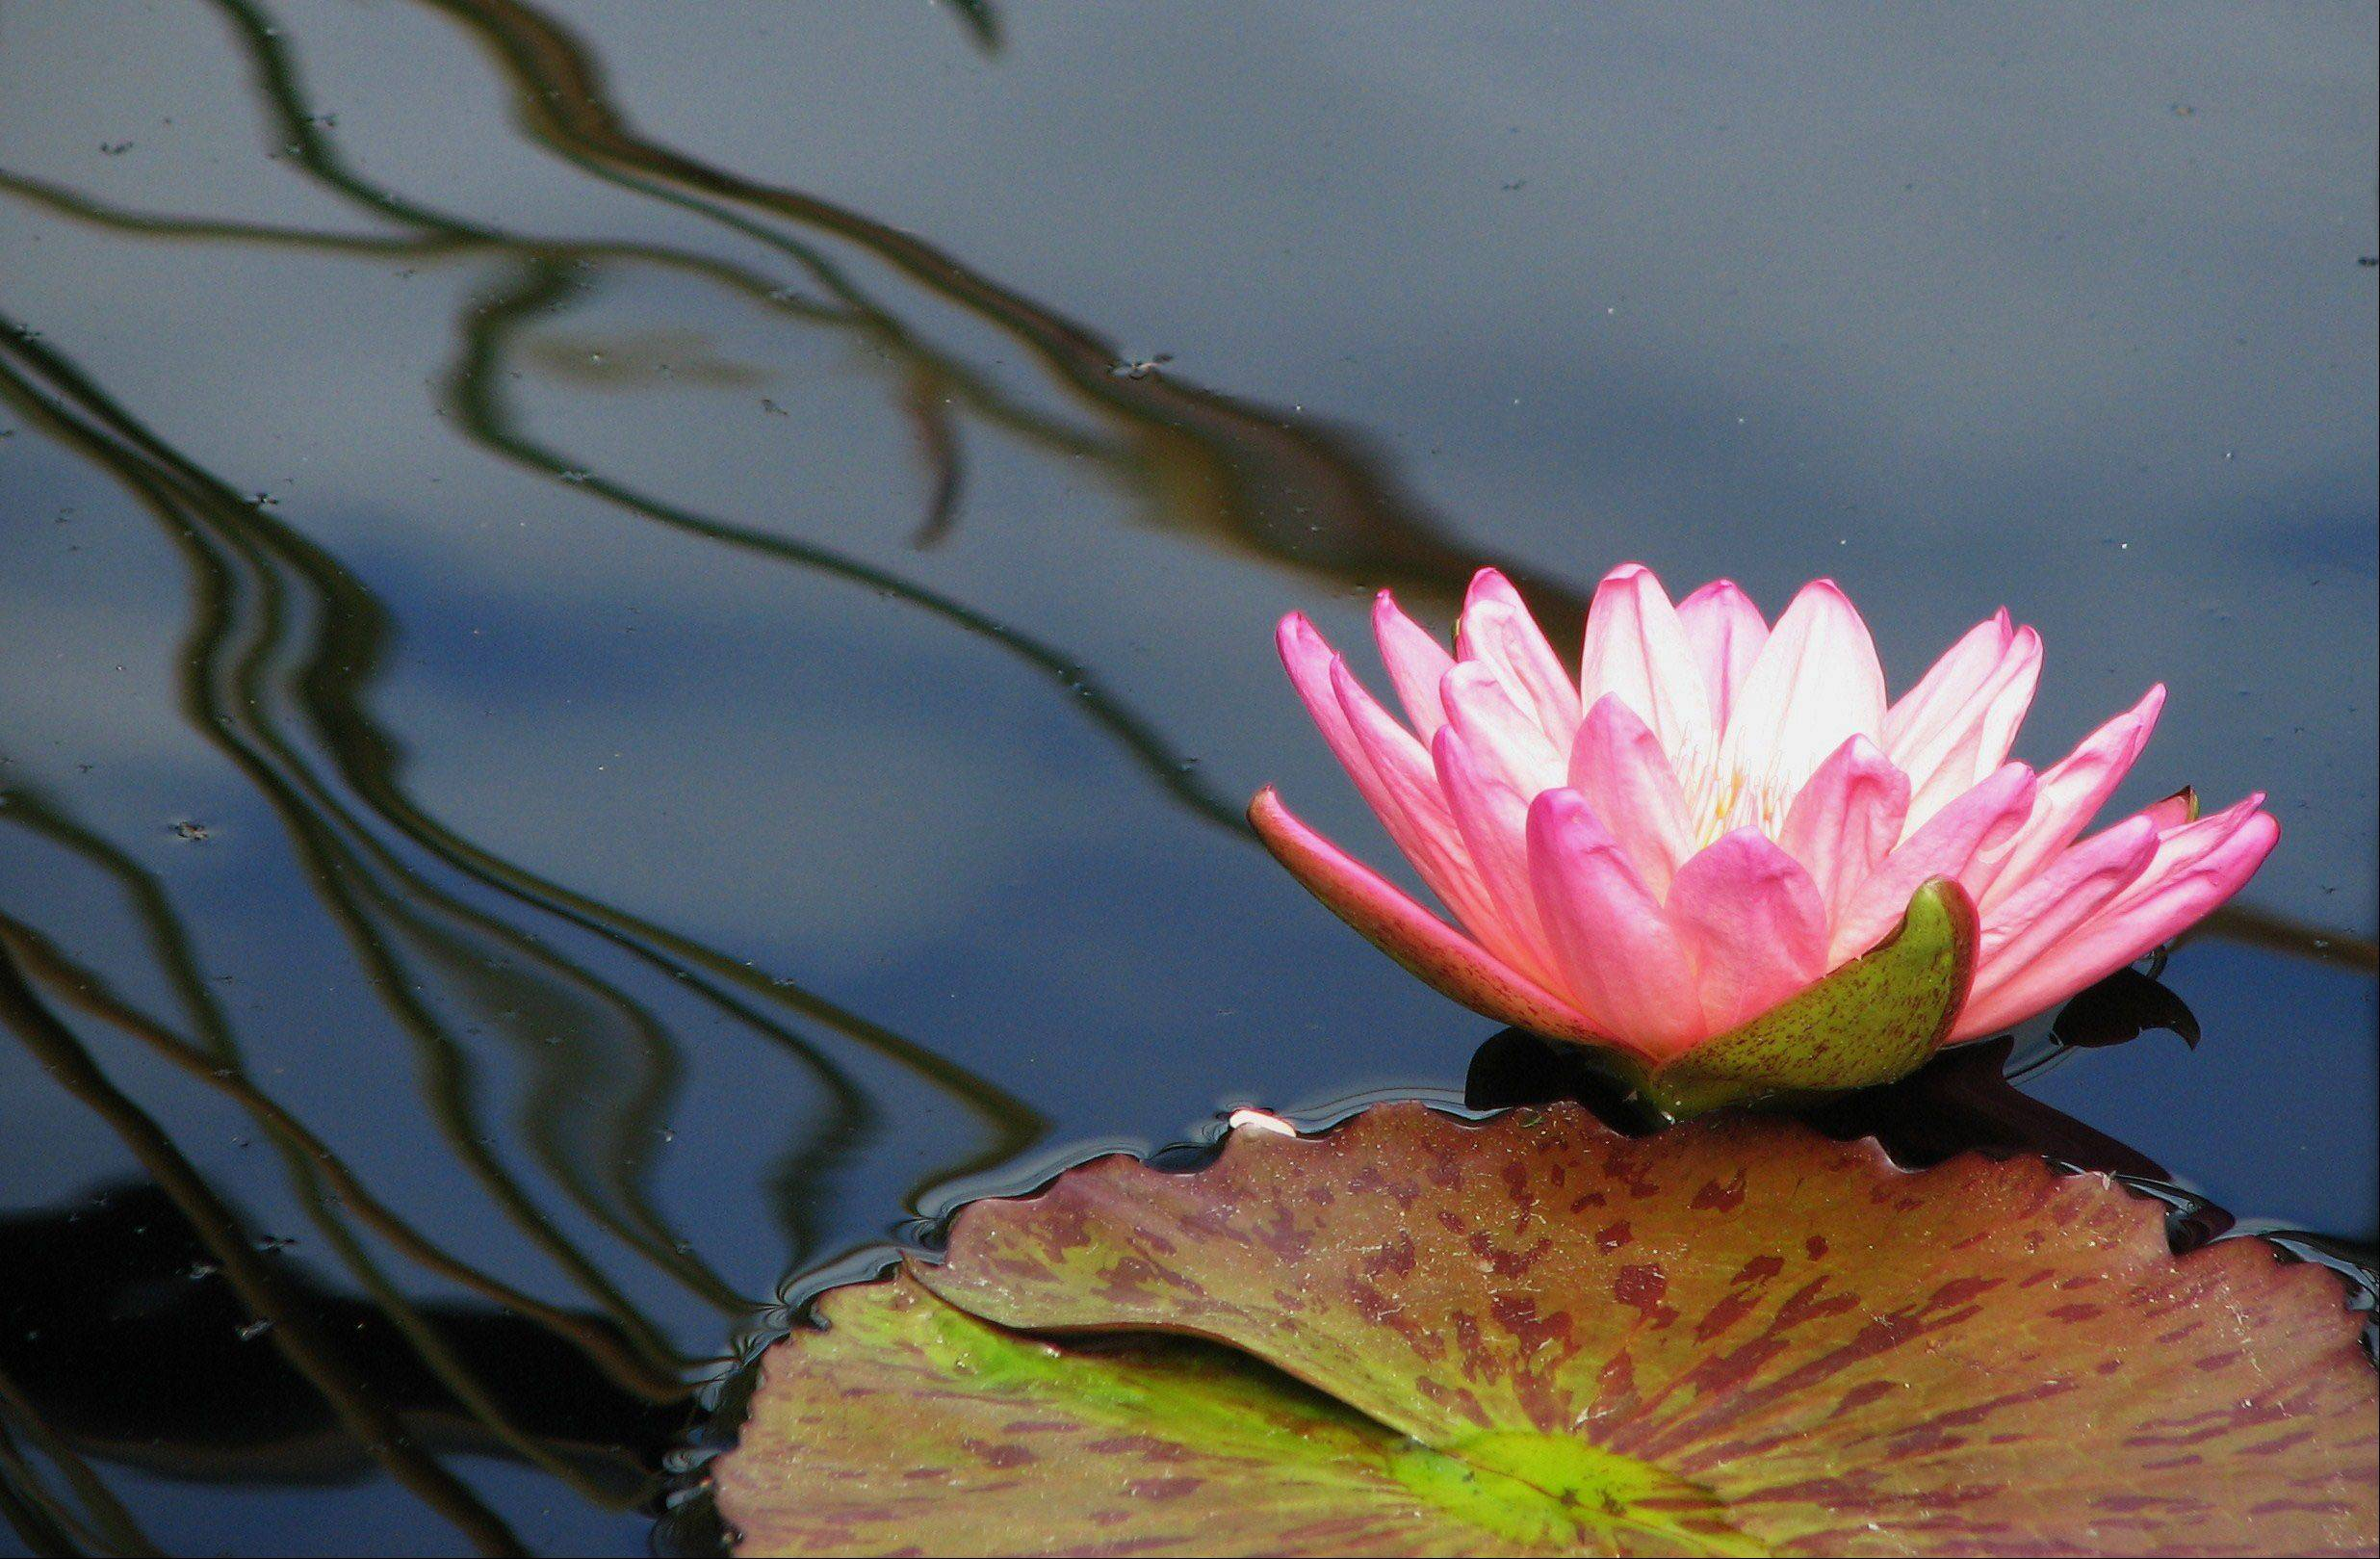 A water lily blossom sits on the rippling water at the Chicago Botanic Garden this fall.